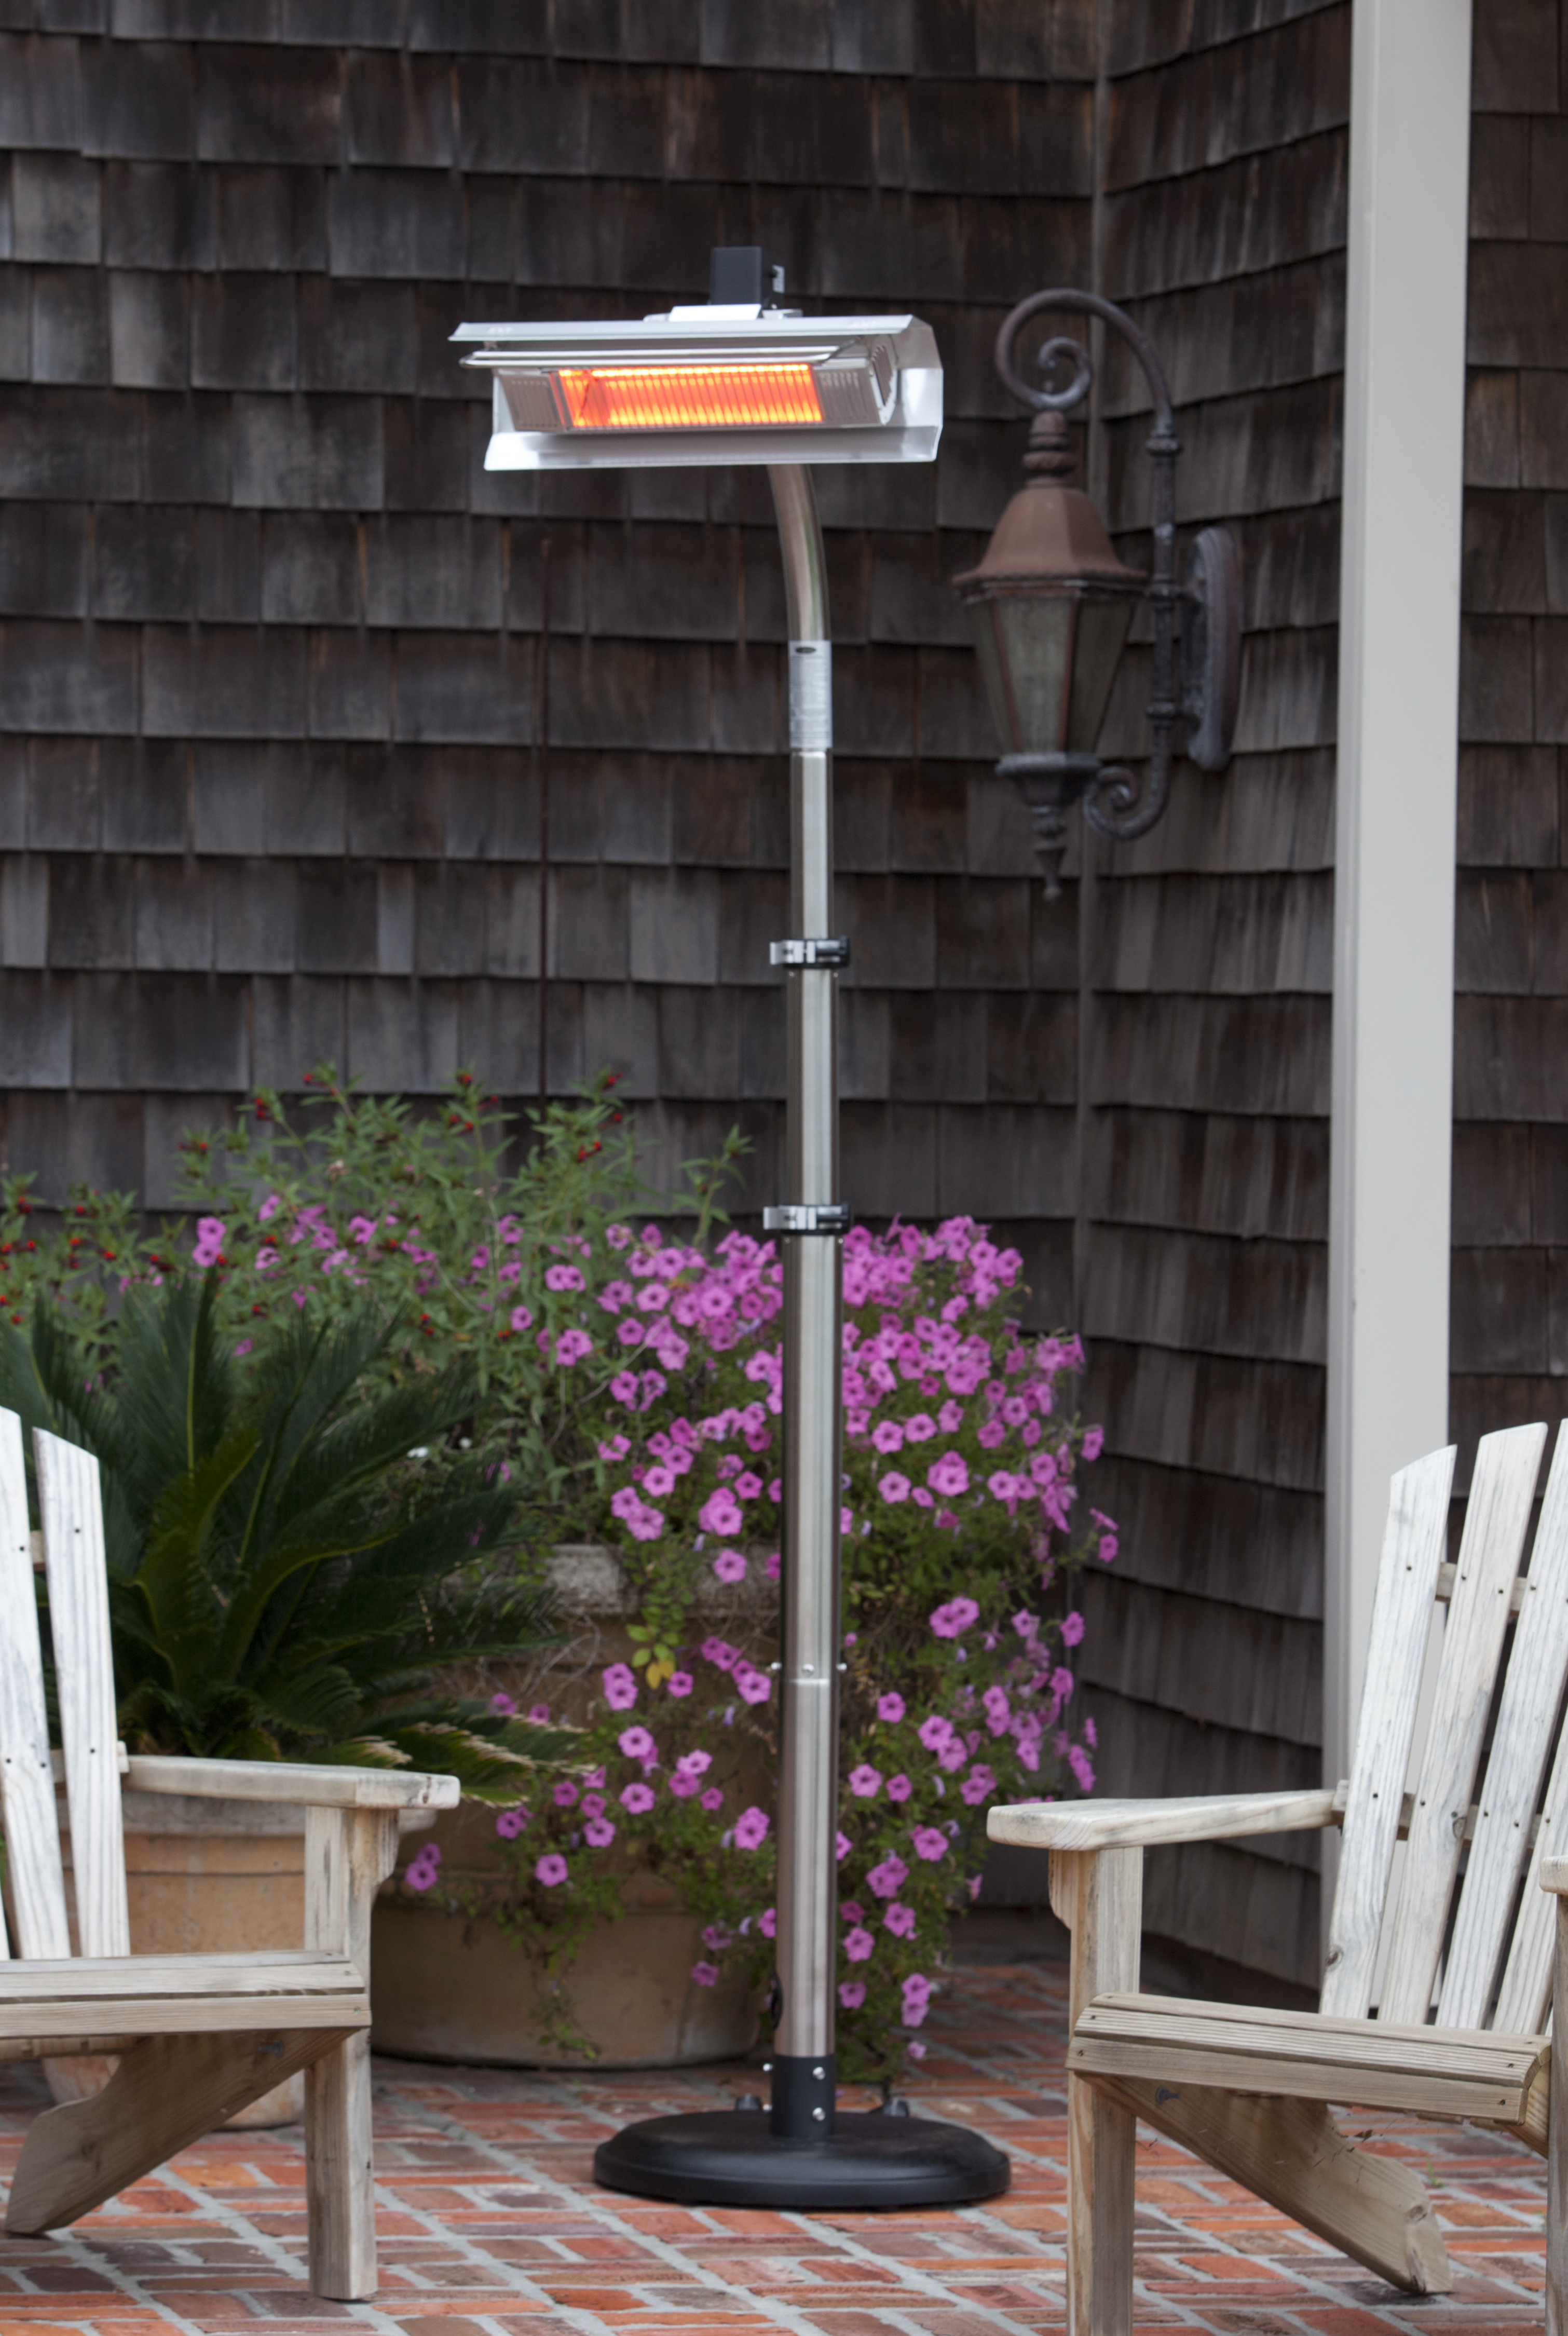 Stainless Steel Telescoping Offset Pole Mounted Infrared